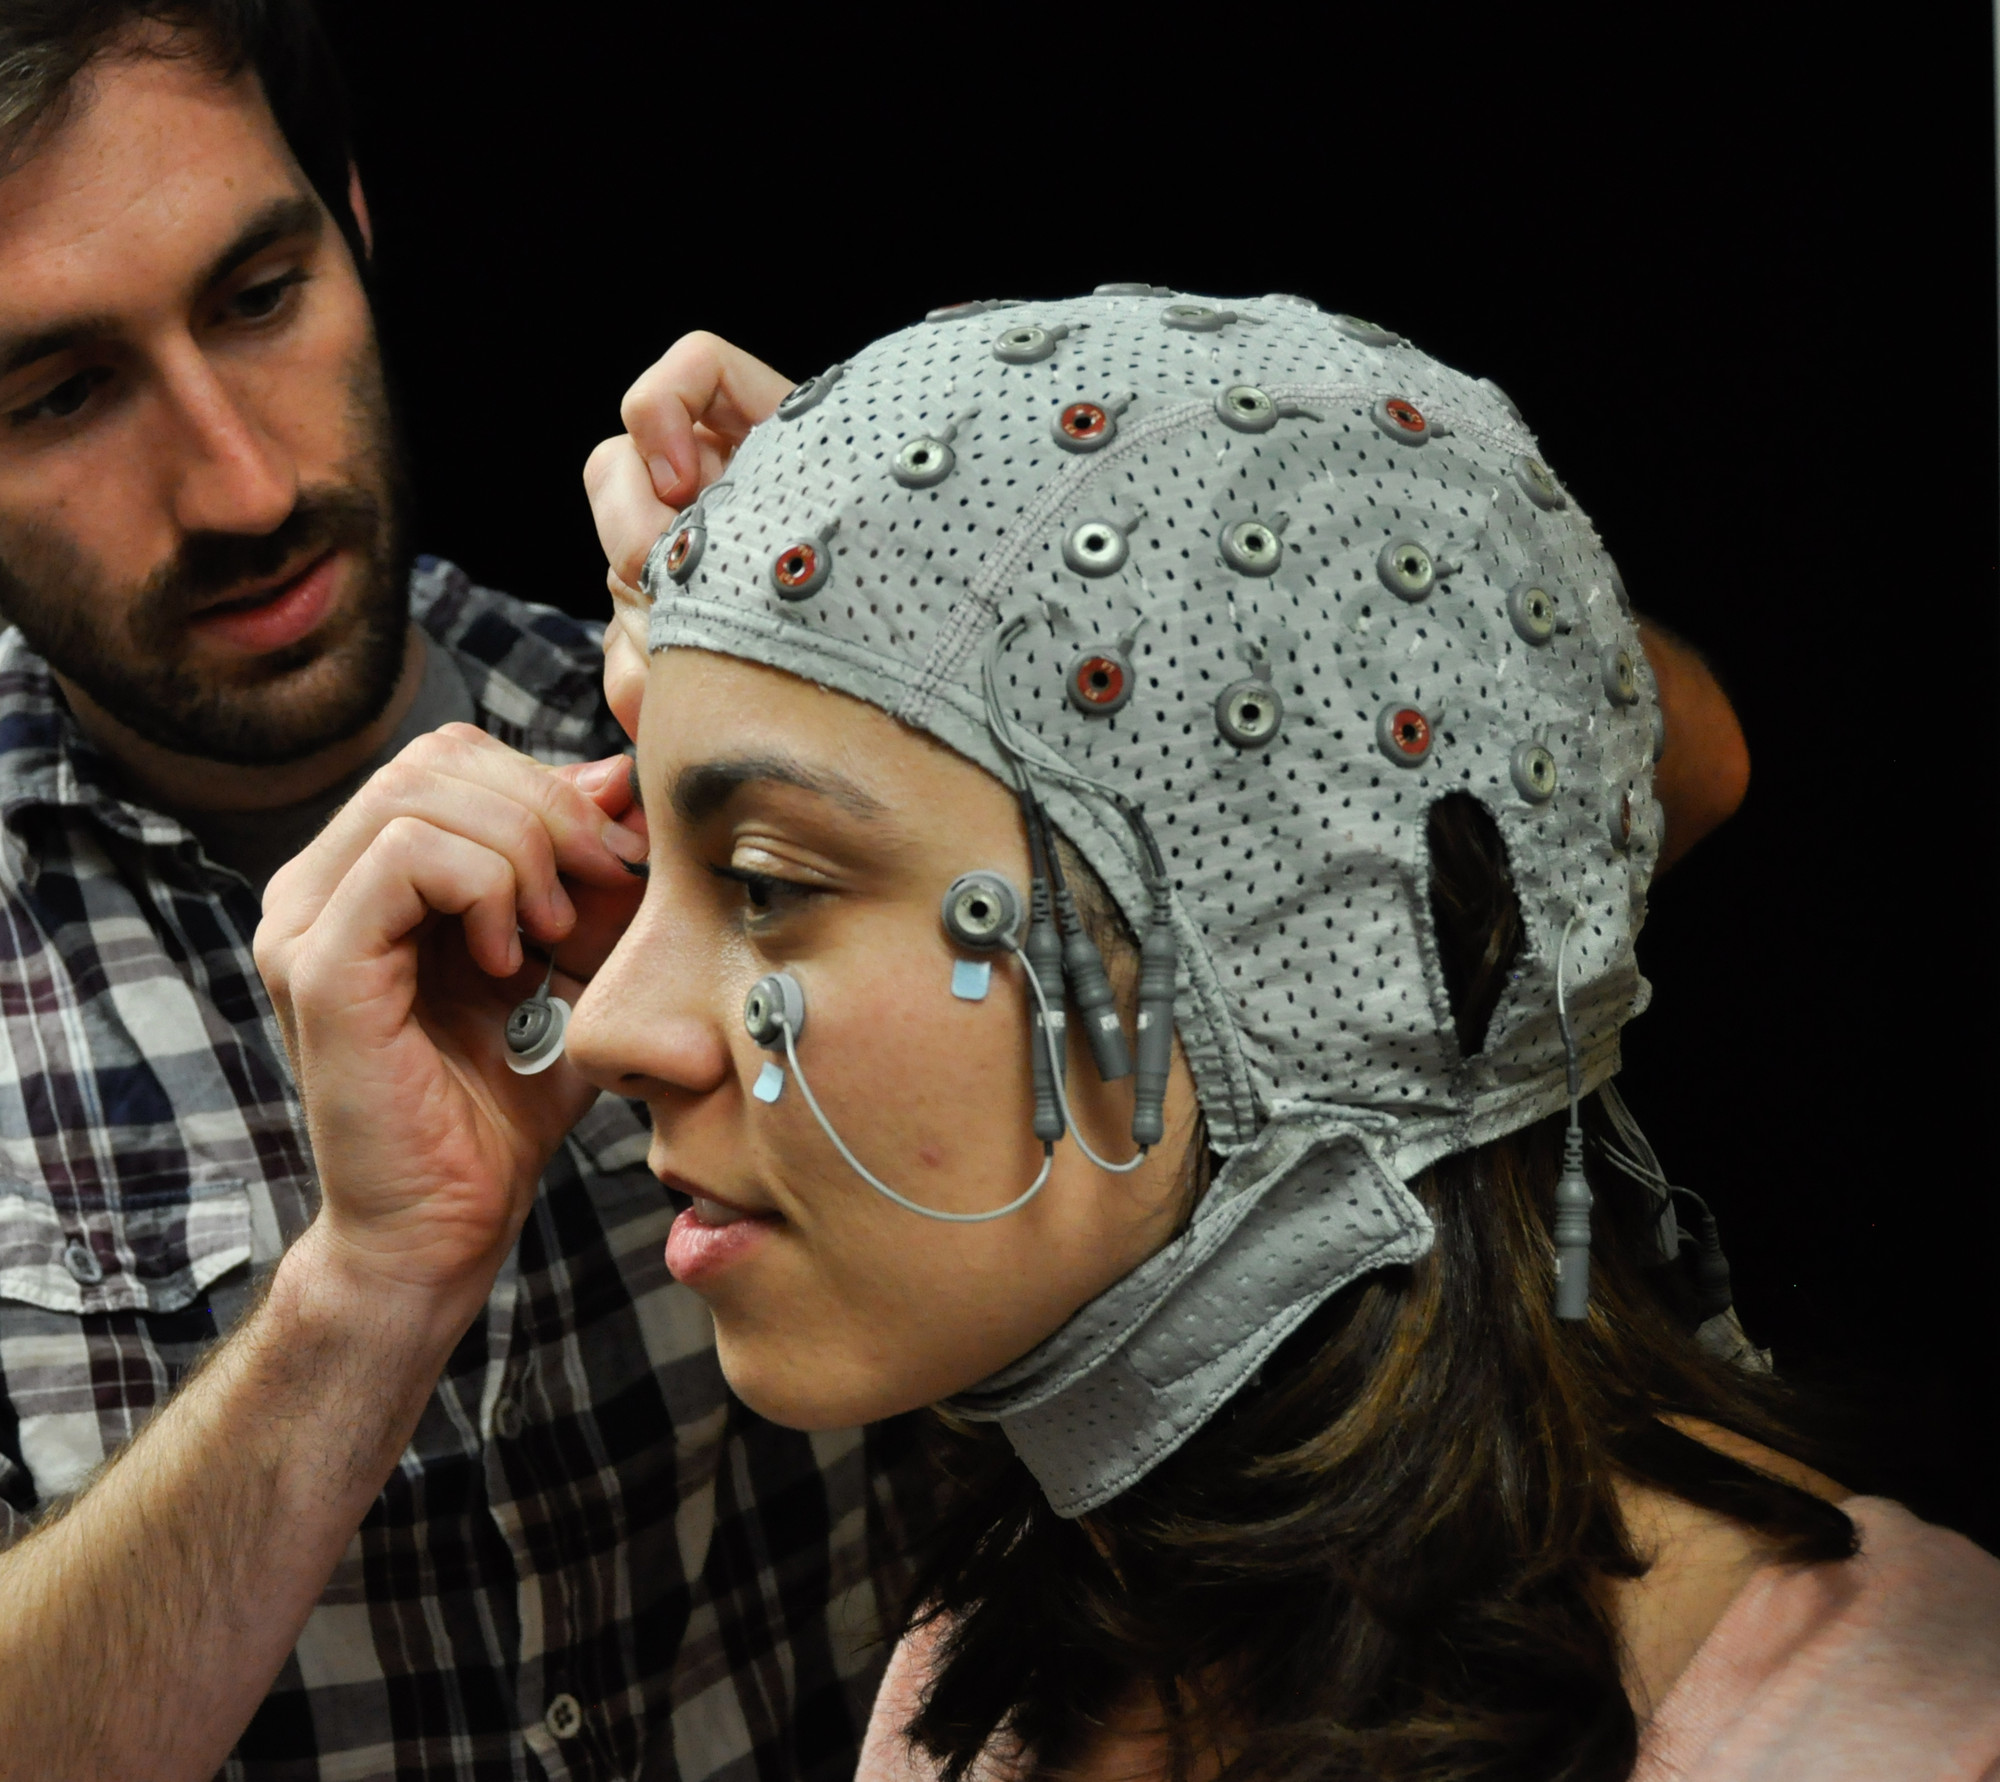 A look inside the mind: Davi Vitela dons a cap used to take EEG scans of her brain activity while she views a series of images. Jay Sanguinetti's study indicates that our minds perceive objects in everyday life of which we are never consciously aware.